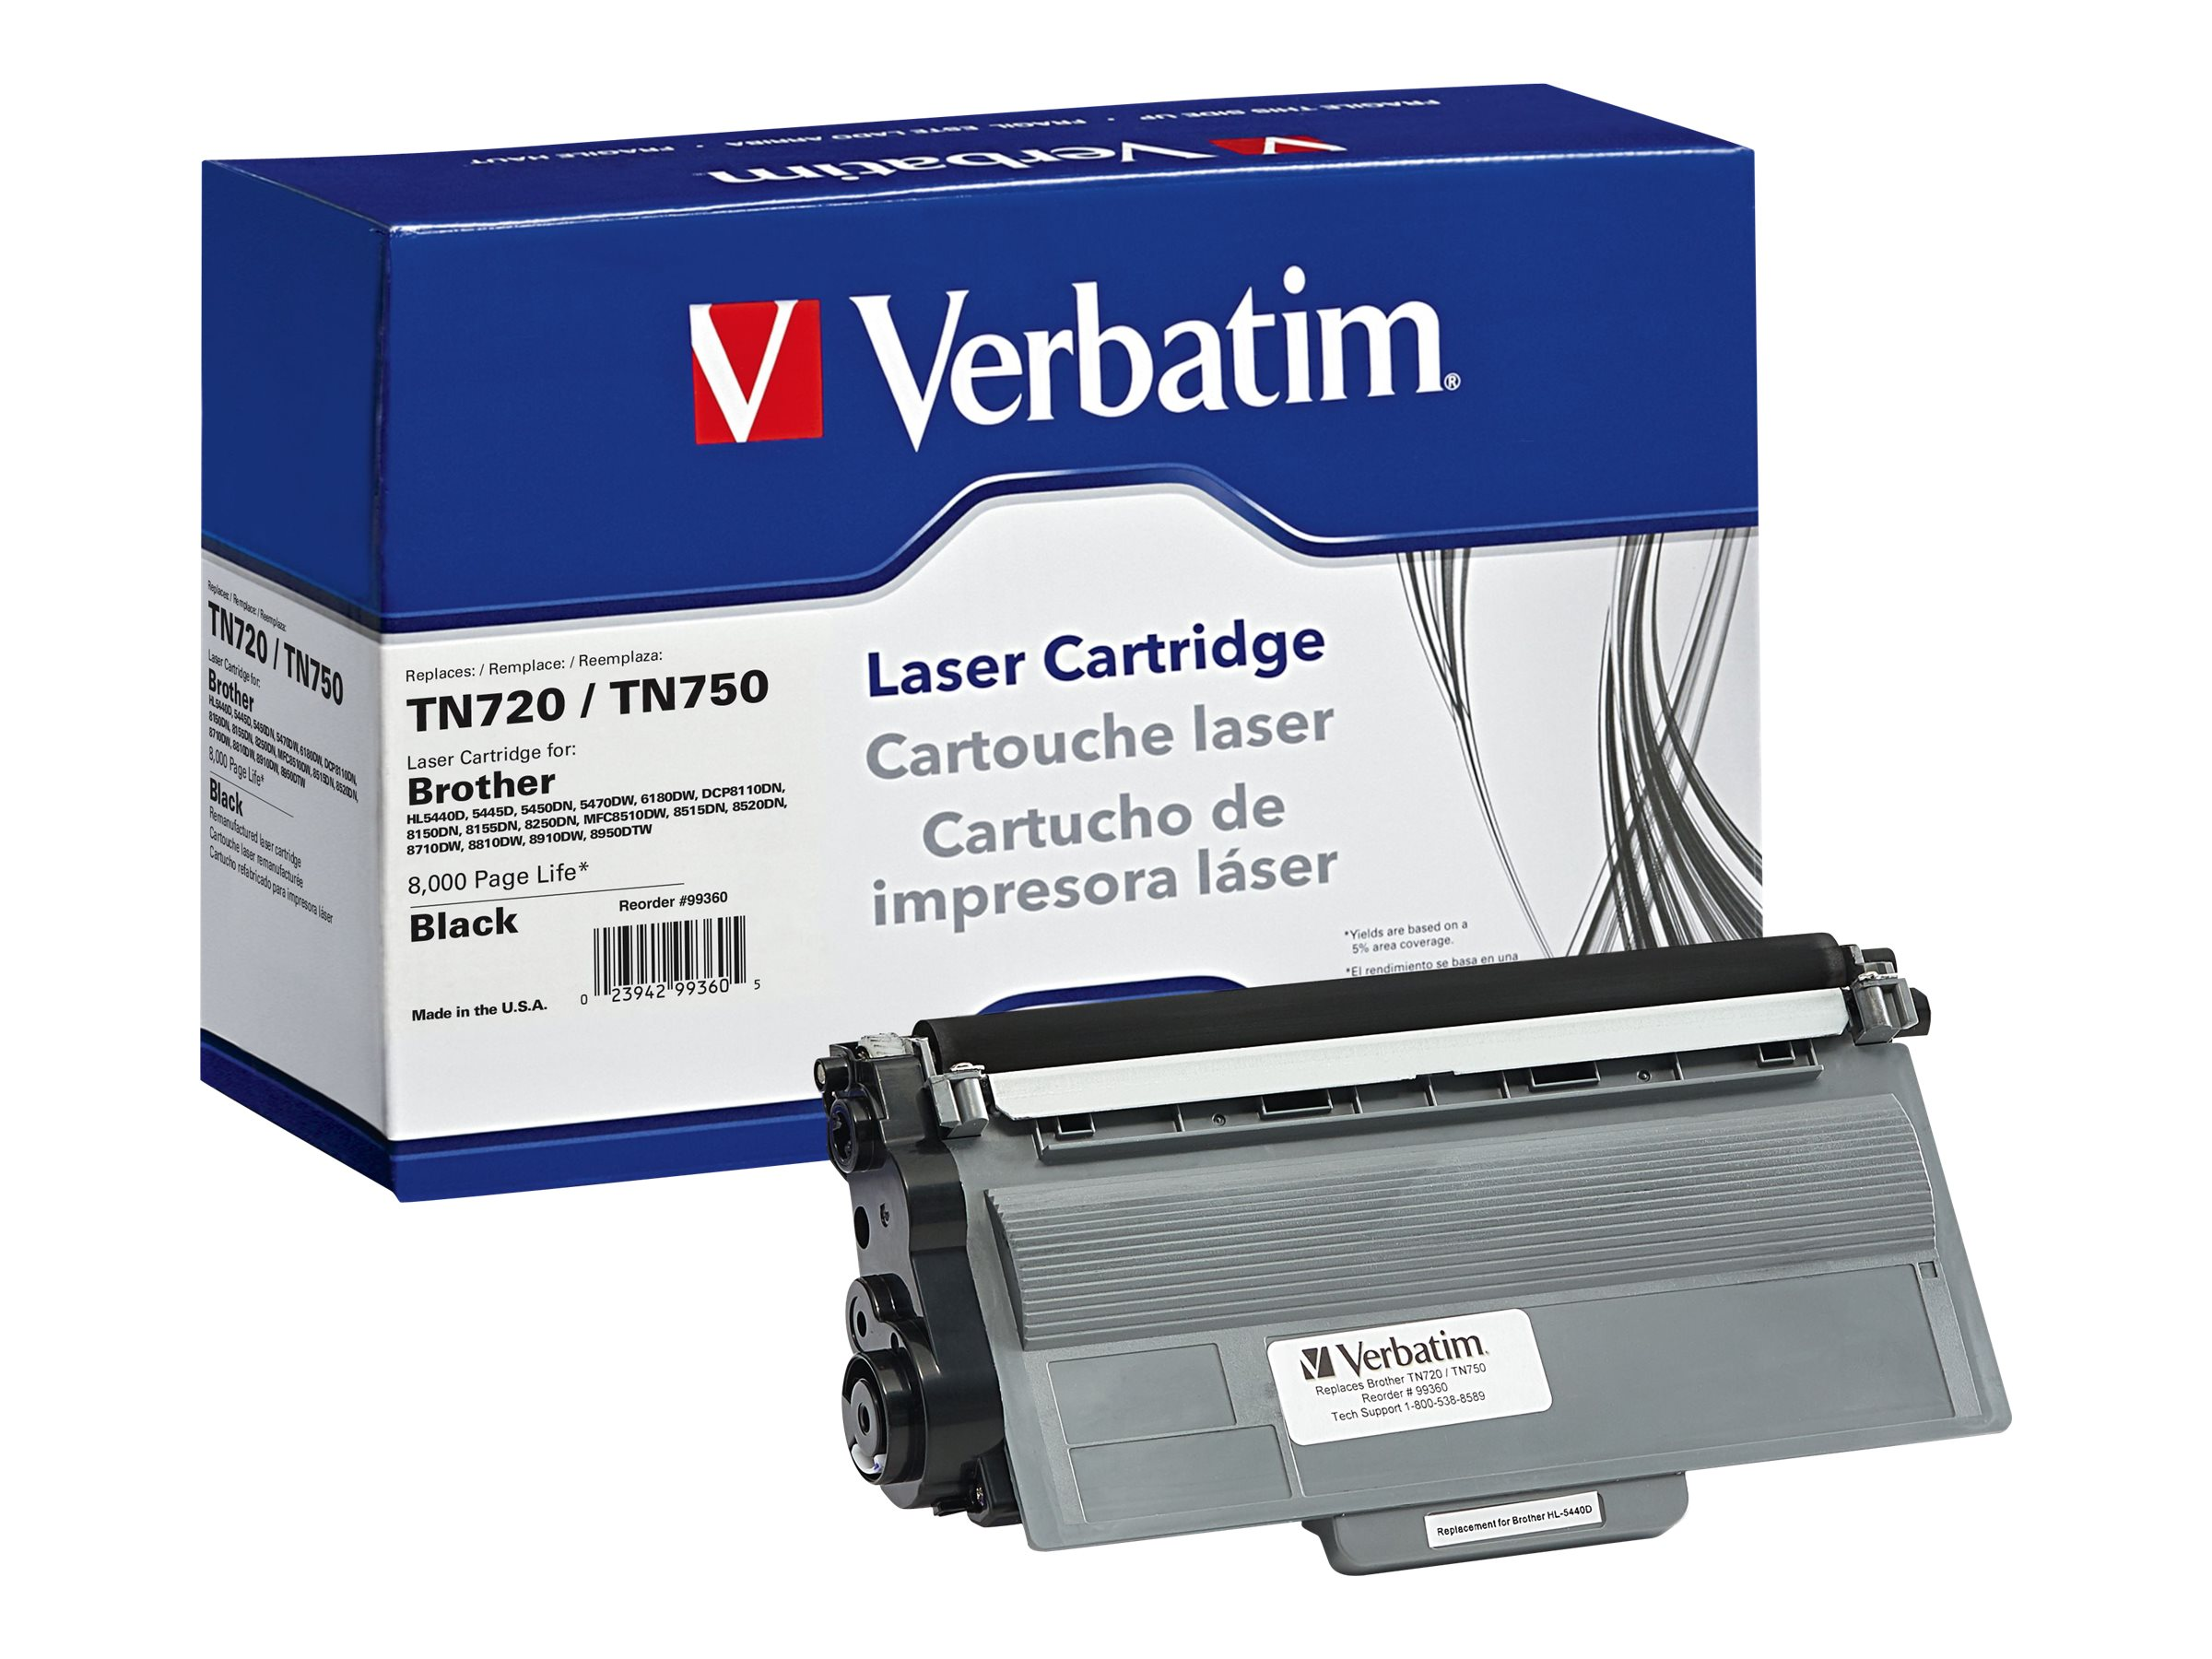 Verbatim TN720 TN750 Toner Cartridge for Brother